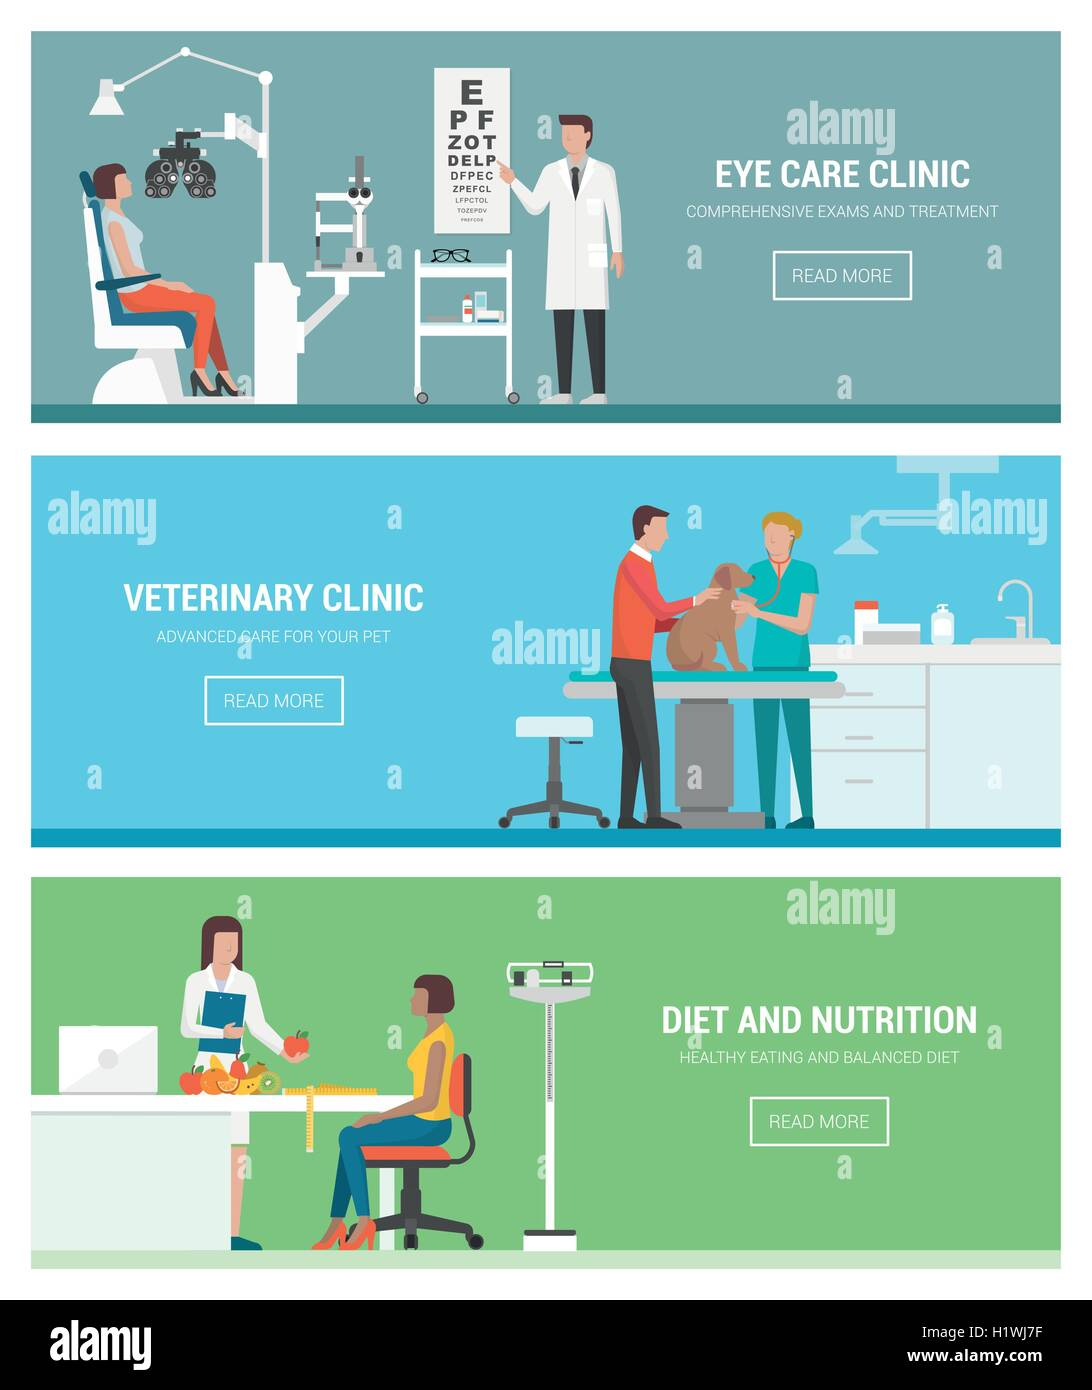 Healthcare and clinics banners set: optician and eye examination, veterinary animal clinic and dietitian with patient - Stock Image